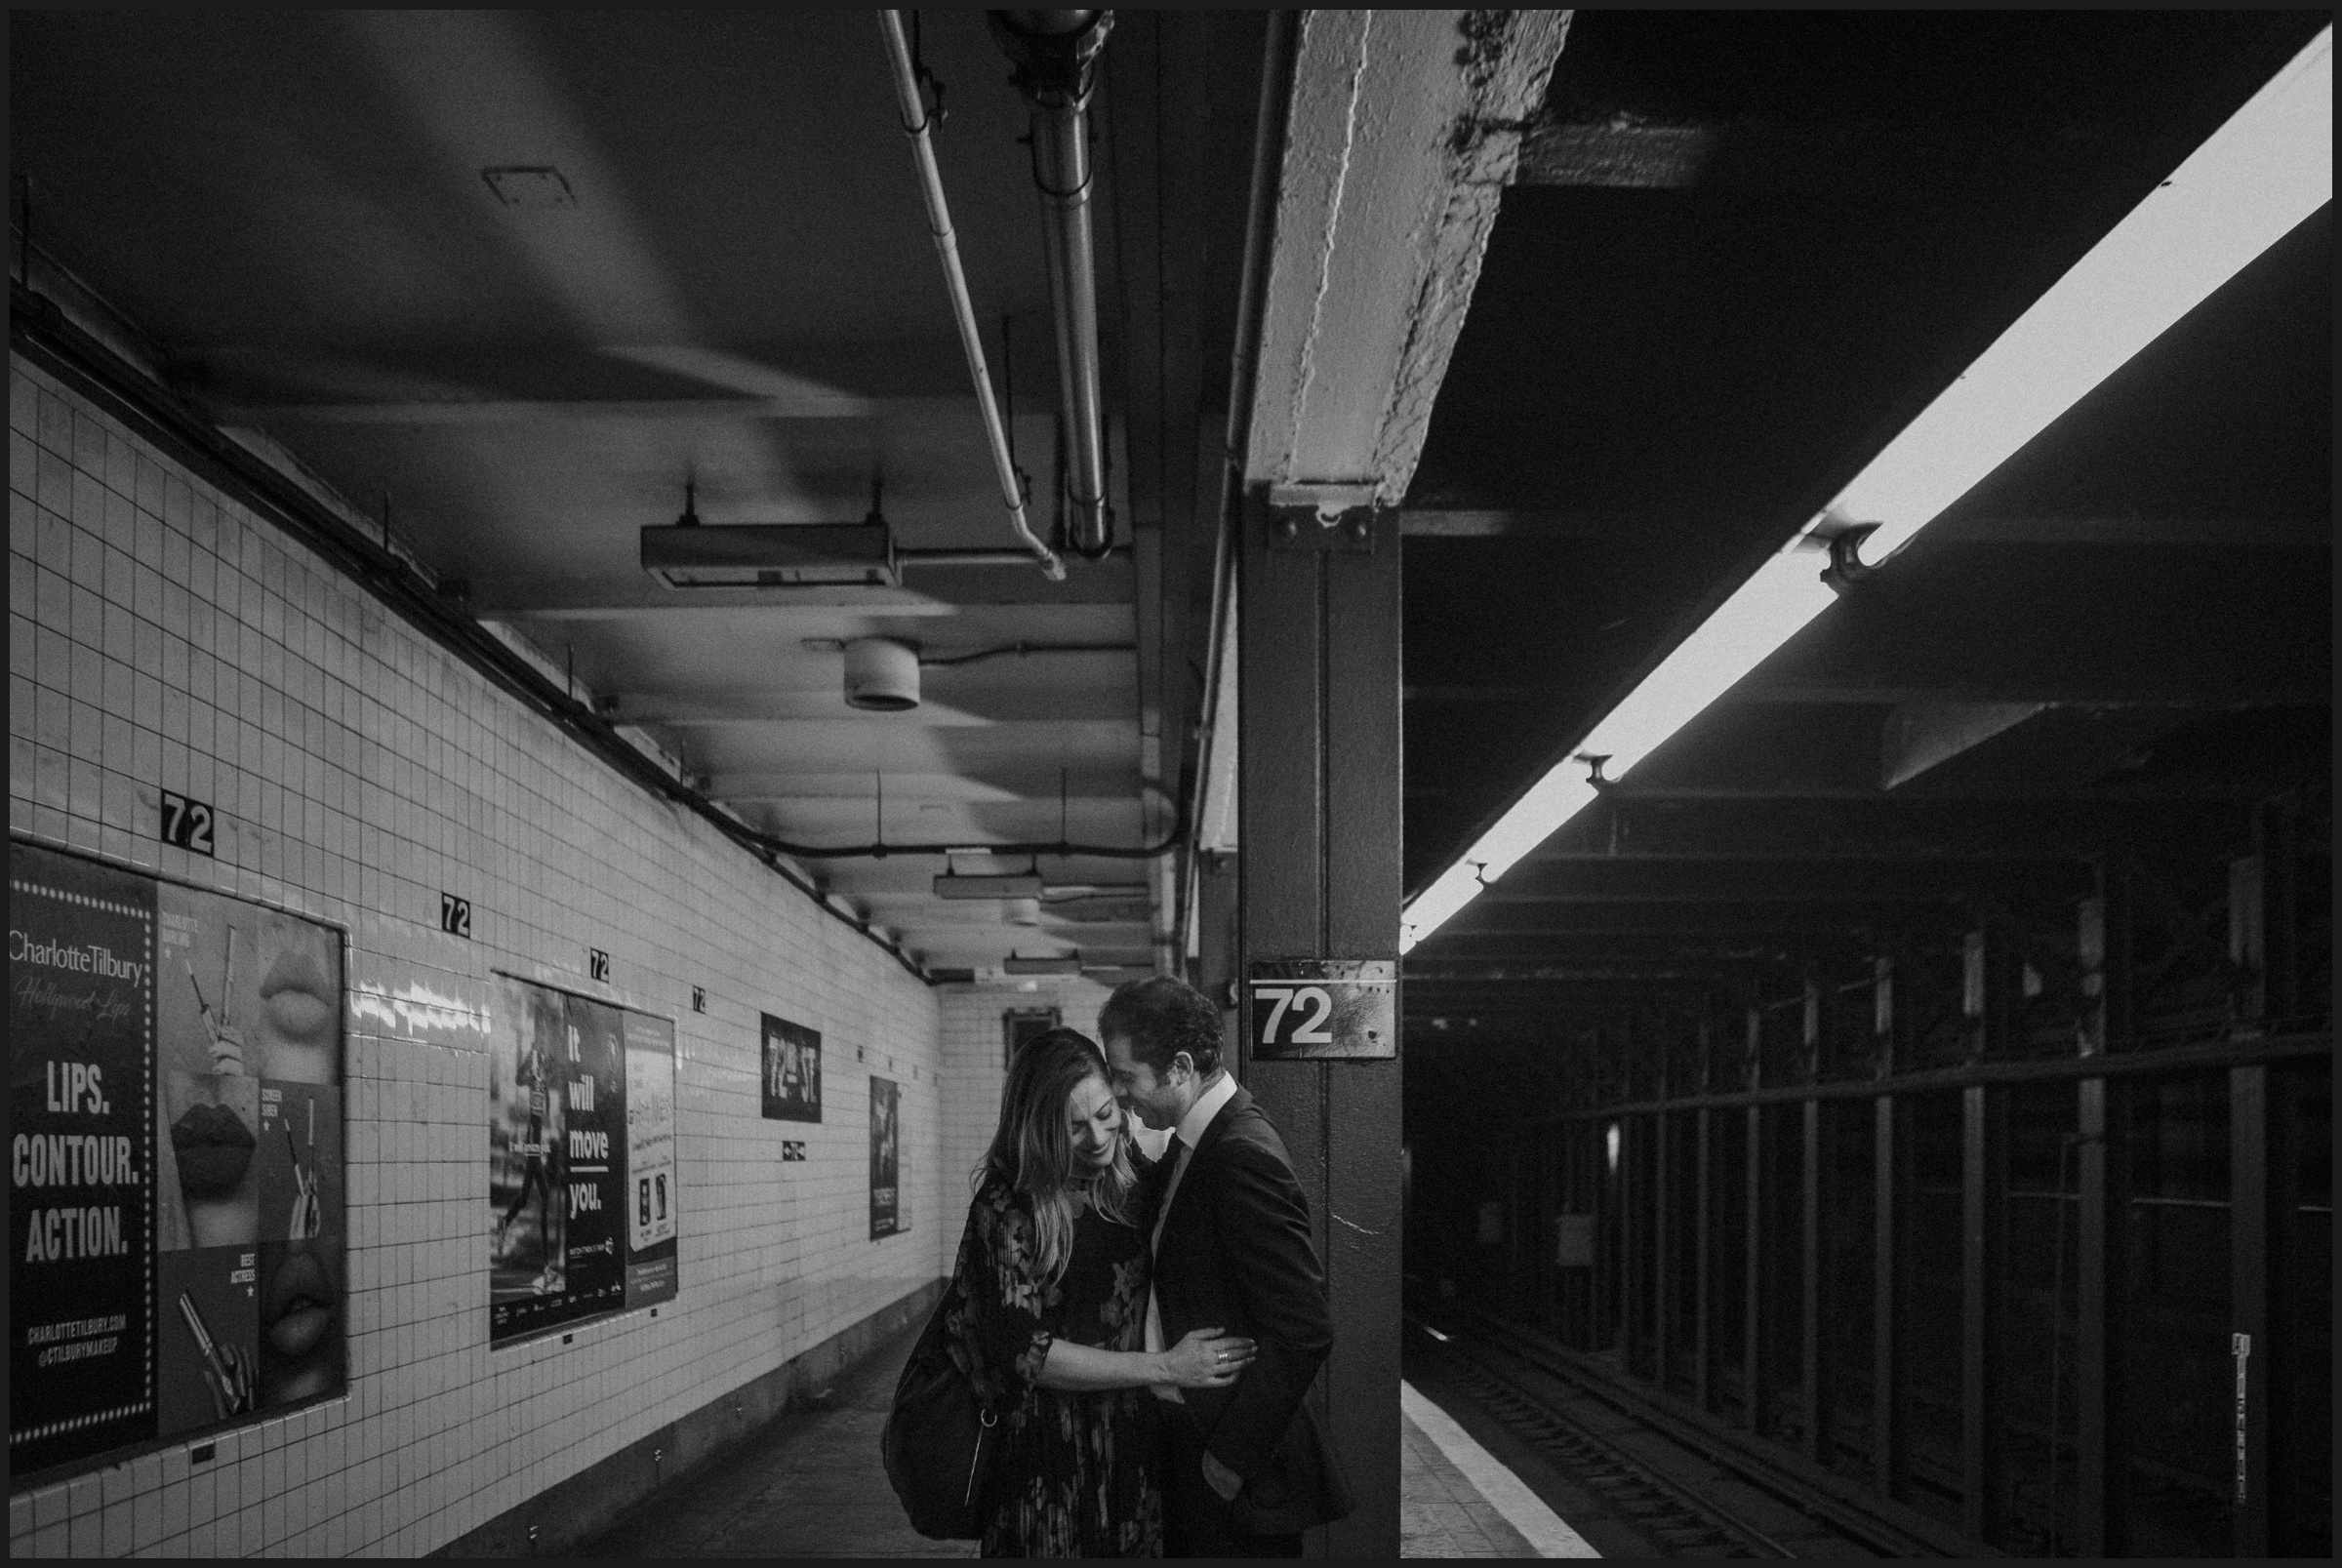 Romantic moment in a new york subway